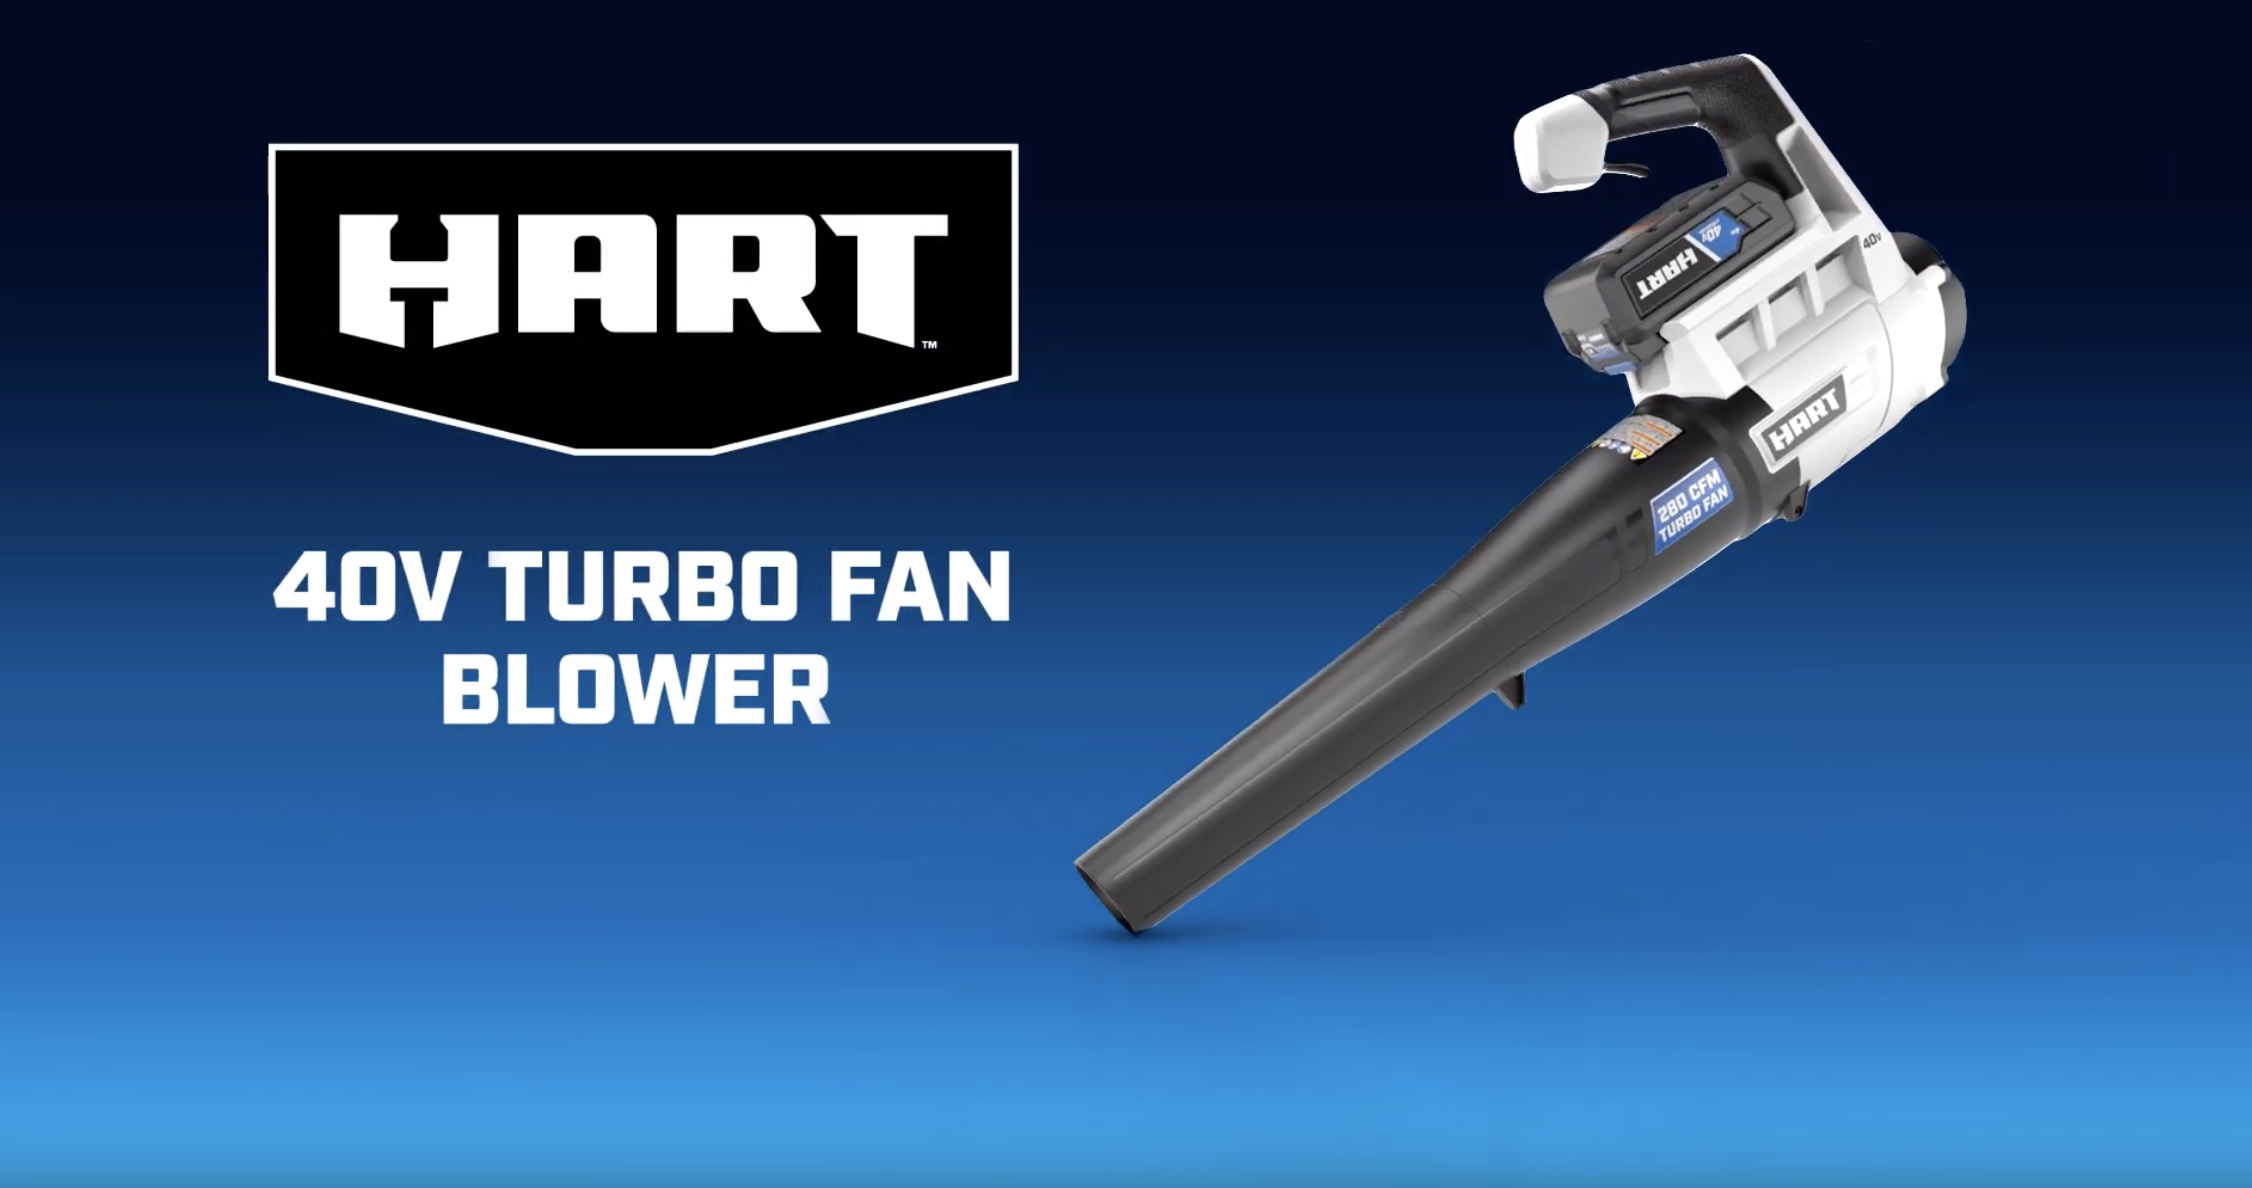 40V Turbo Fan Blower